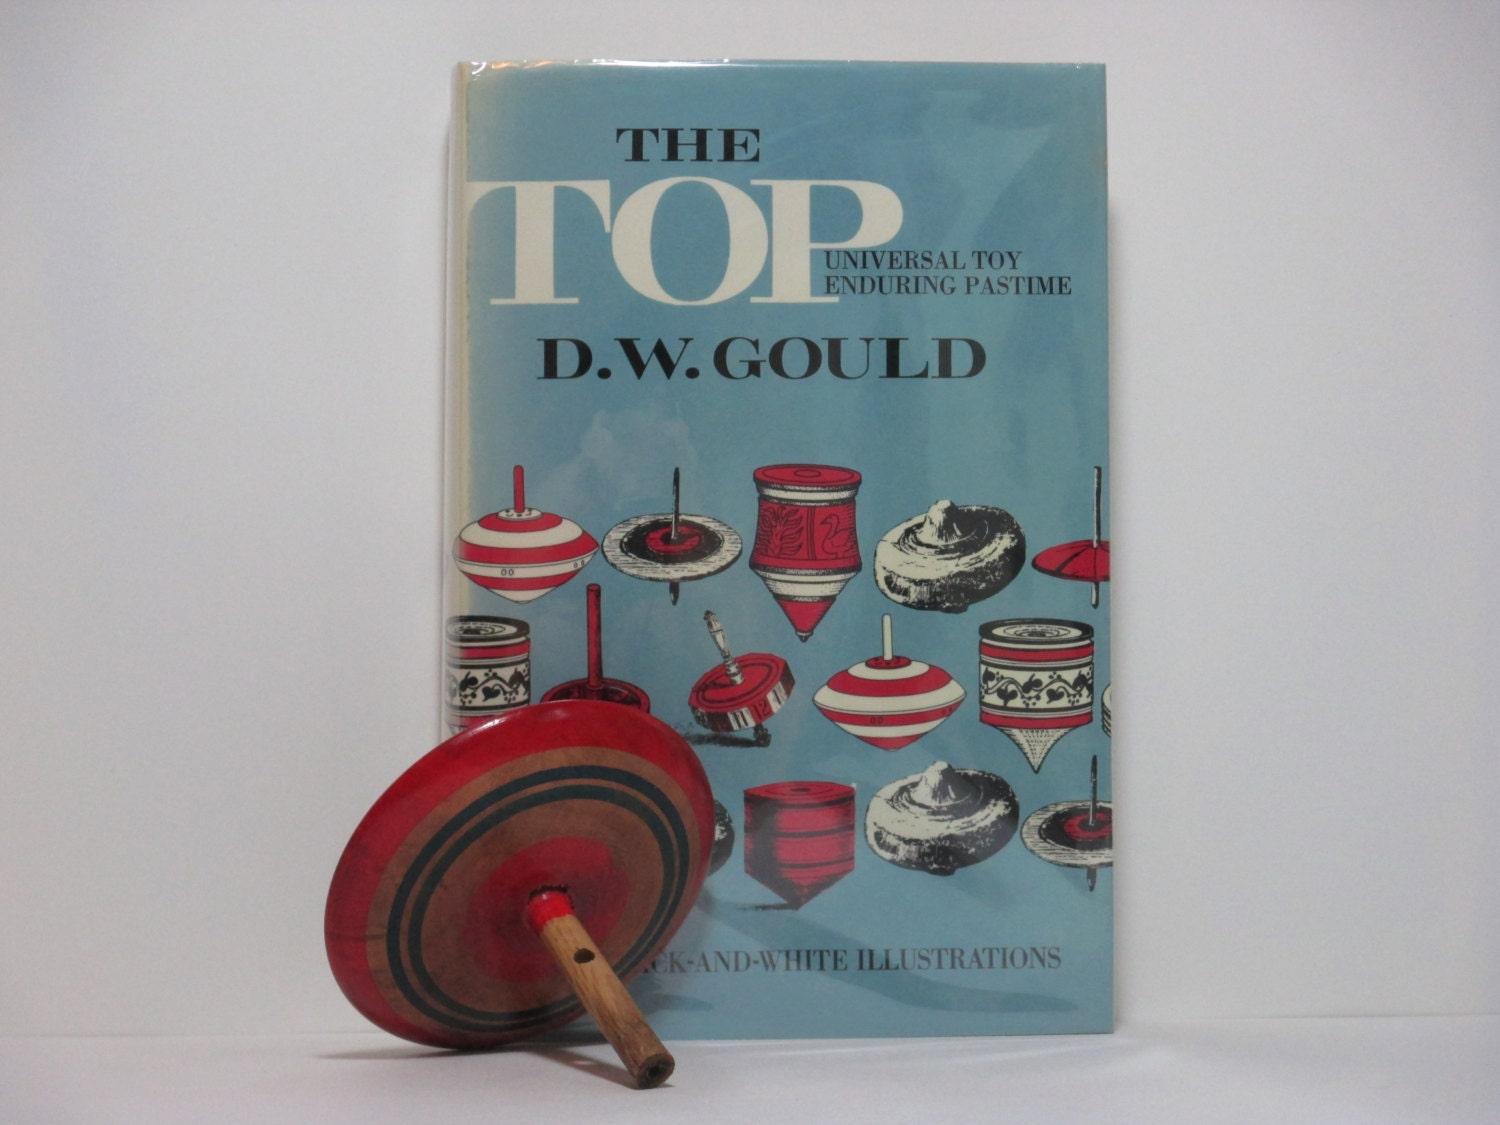 Popular Toys In 1973 : The top universal toy enduring pastime by d w gould